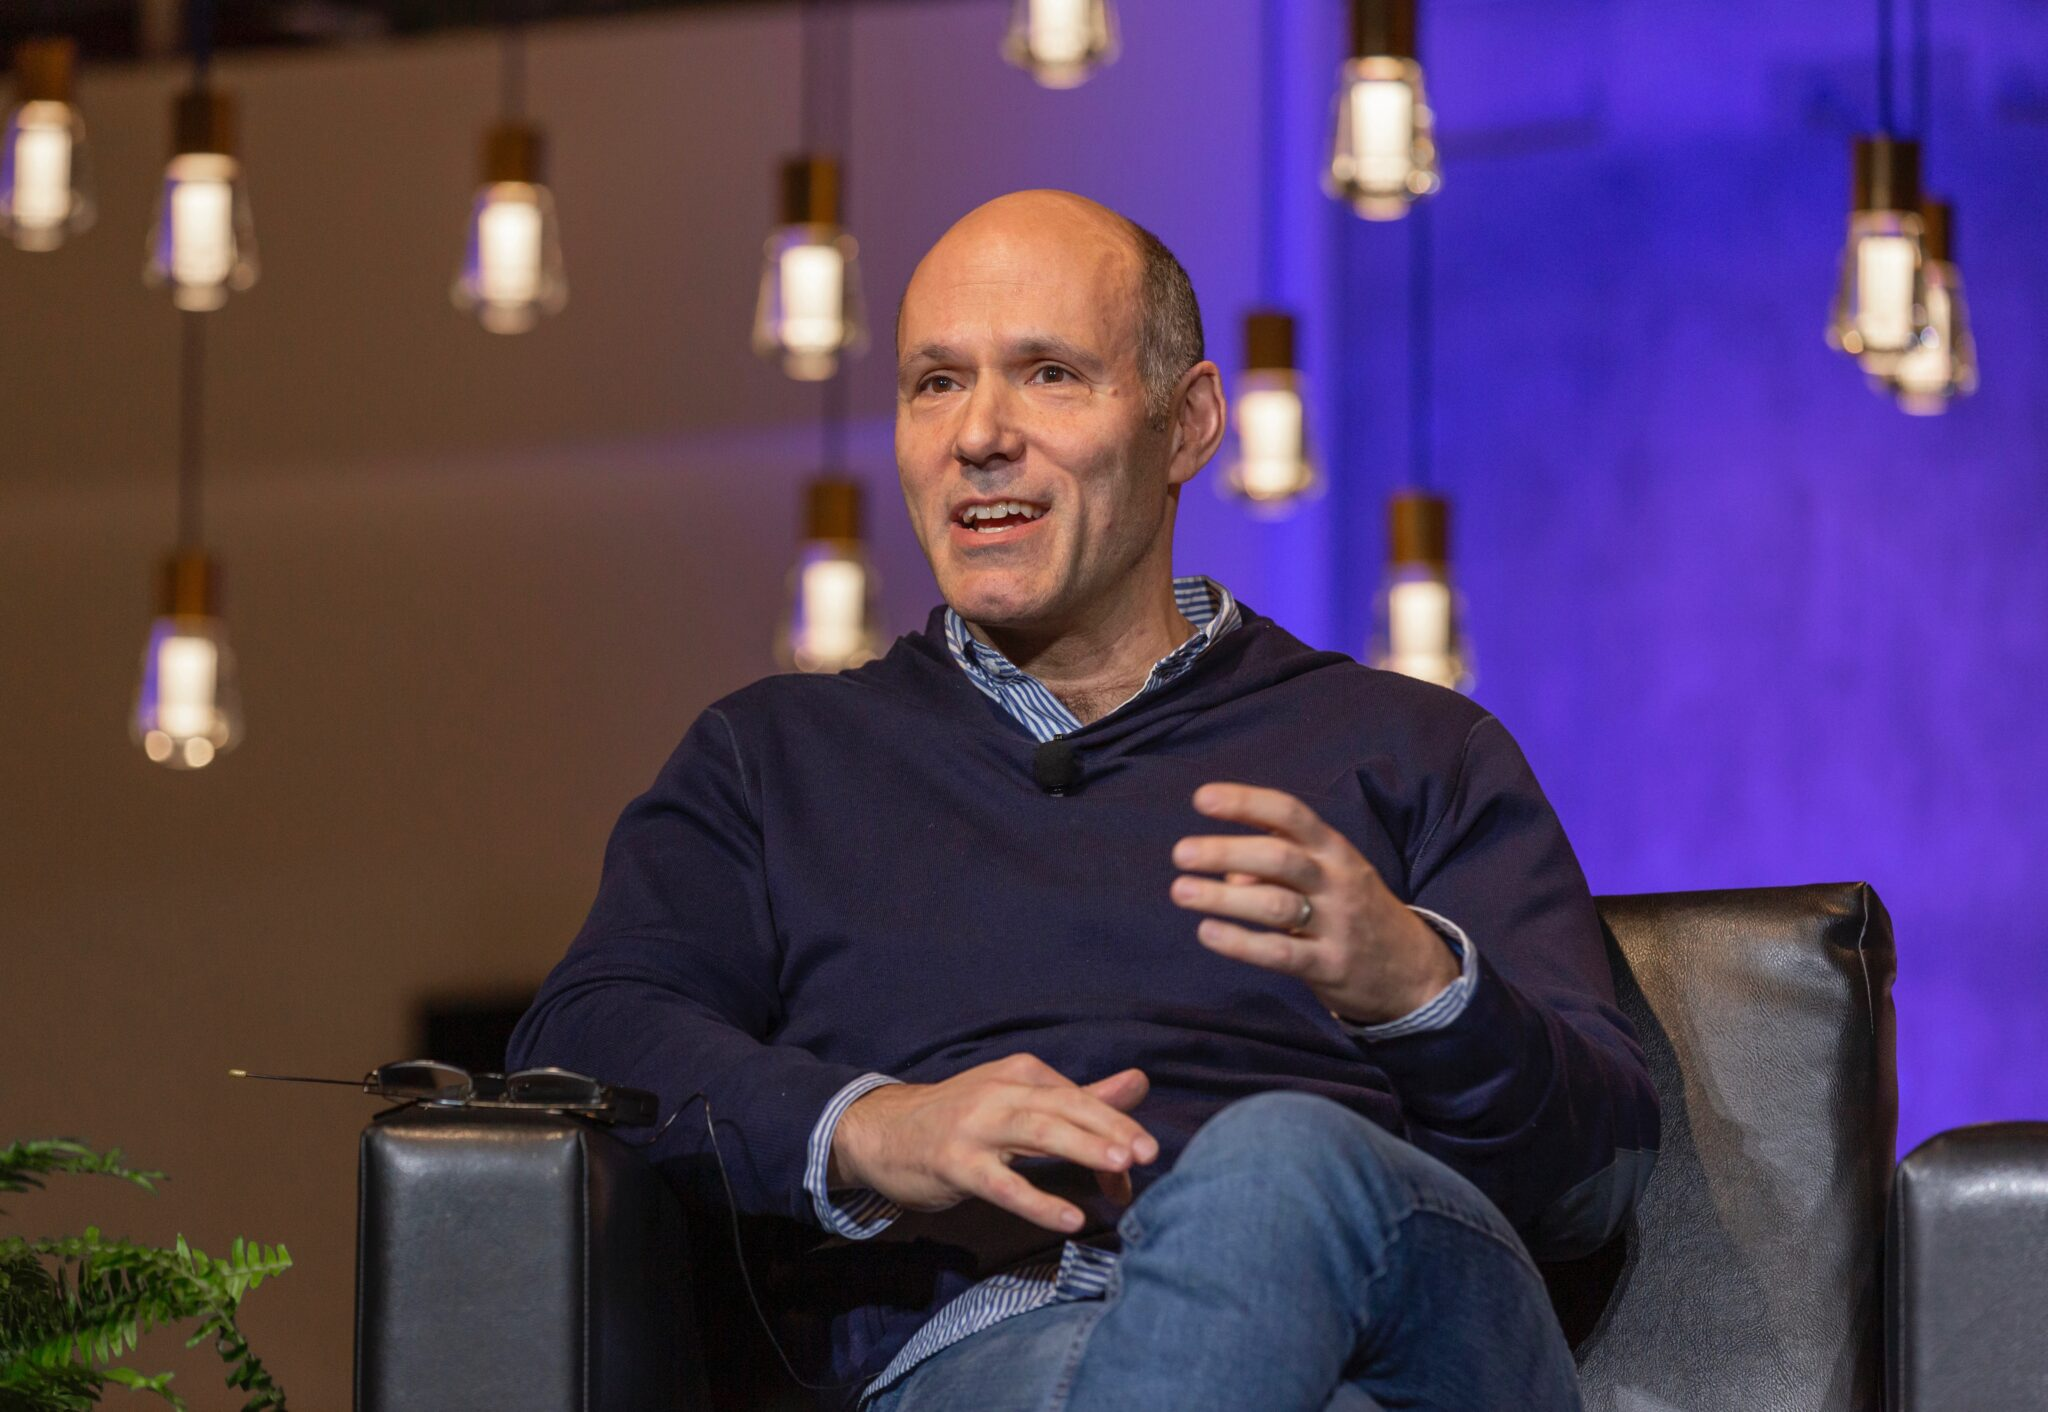 Expedia Group CEO says he's 'rooting for revenge travel' as revenue sinks 44% in Q1